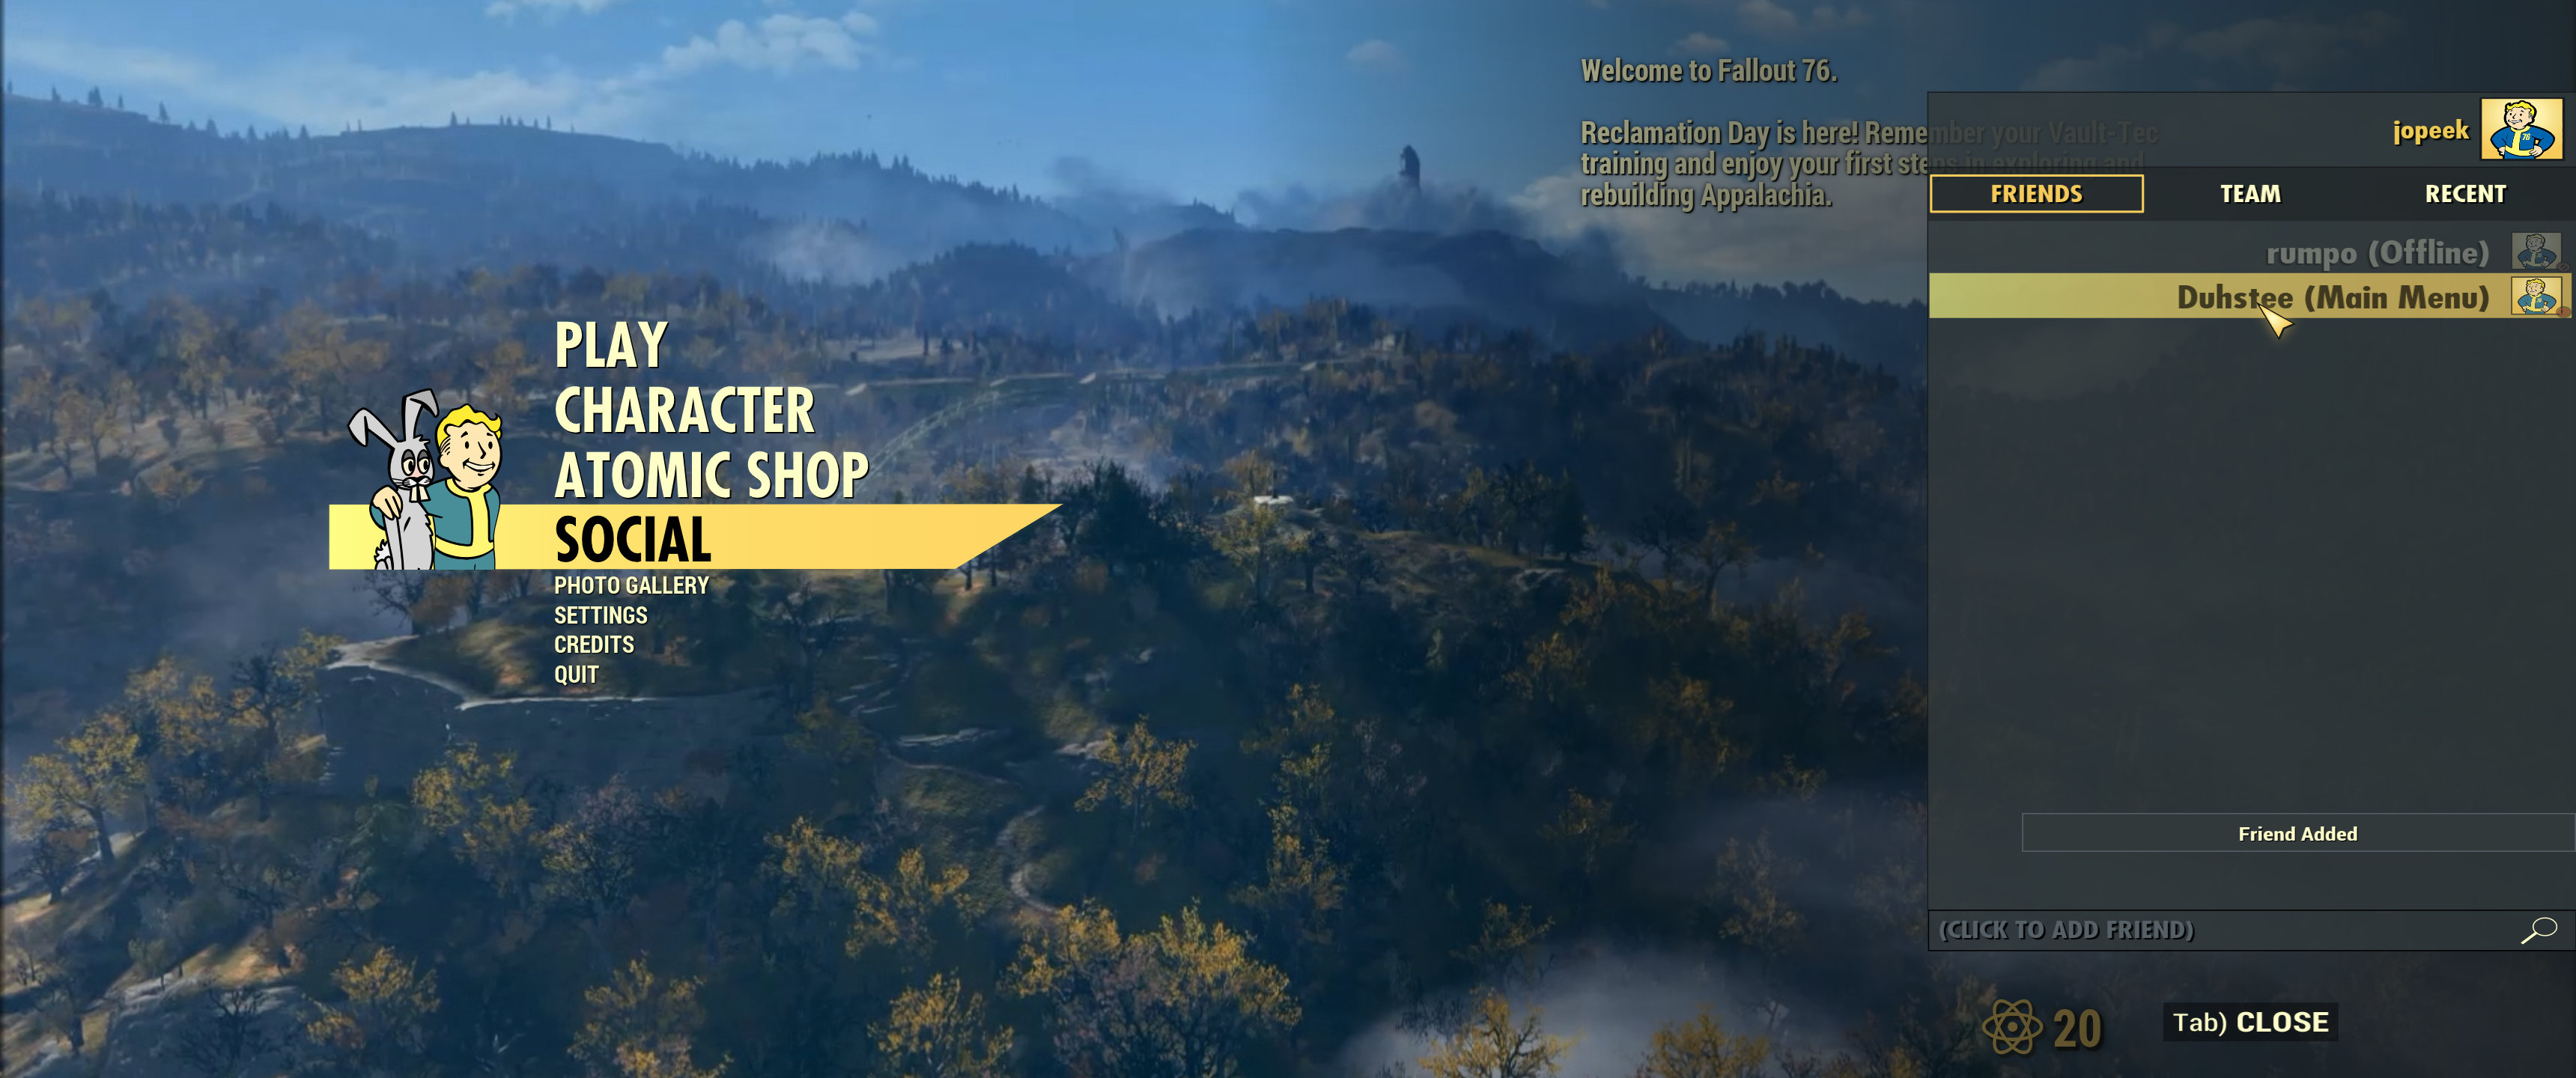 How to Play With Friends and Create a Team in Fallout 76